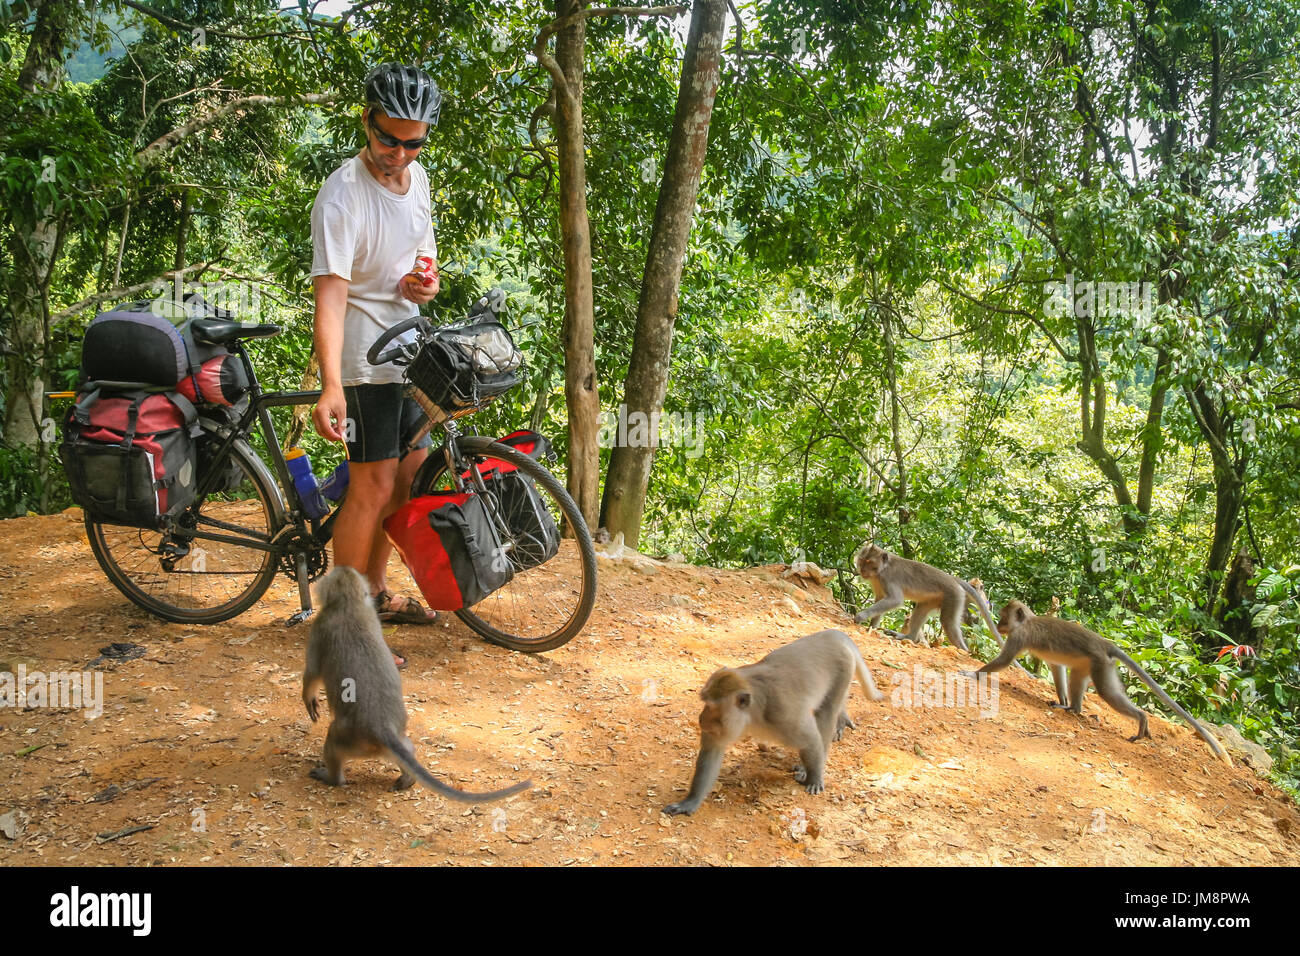 Male cyclist feeding group of monkeys while on a cycle touring trip in Bali, Indonesia - Stock Image